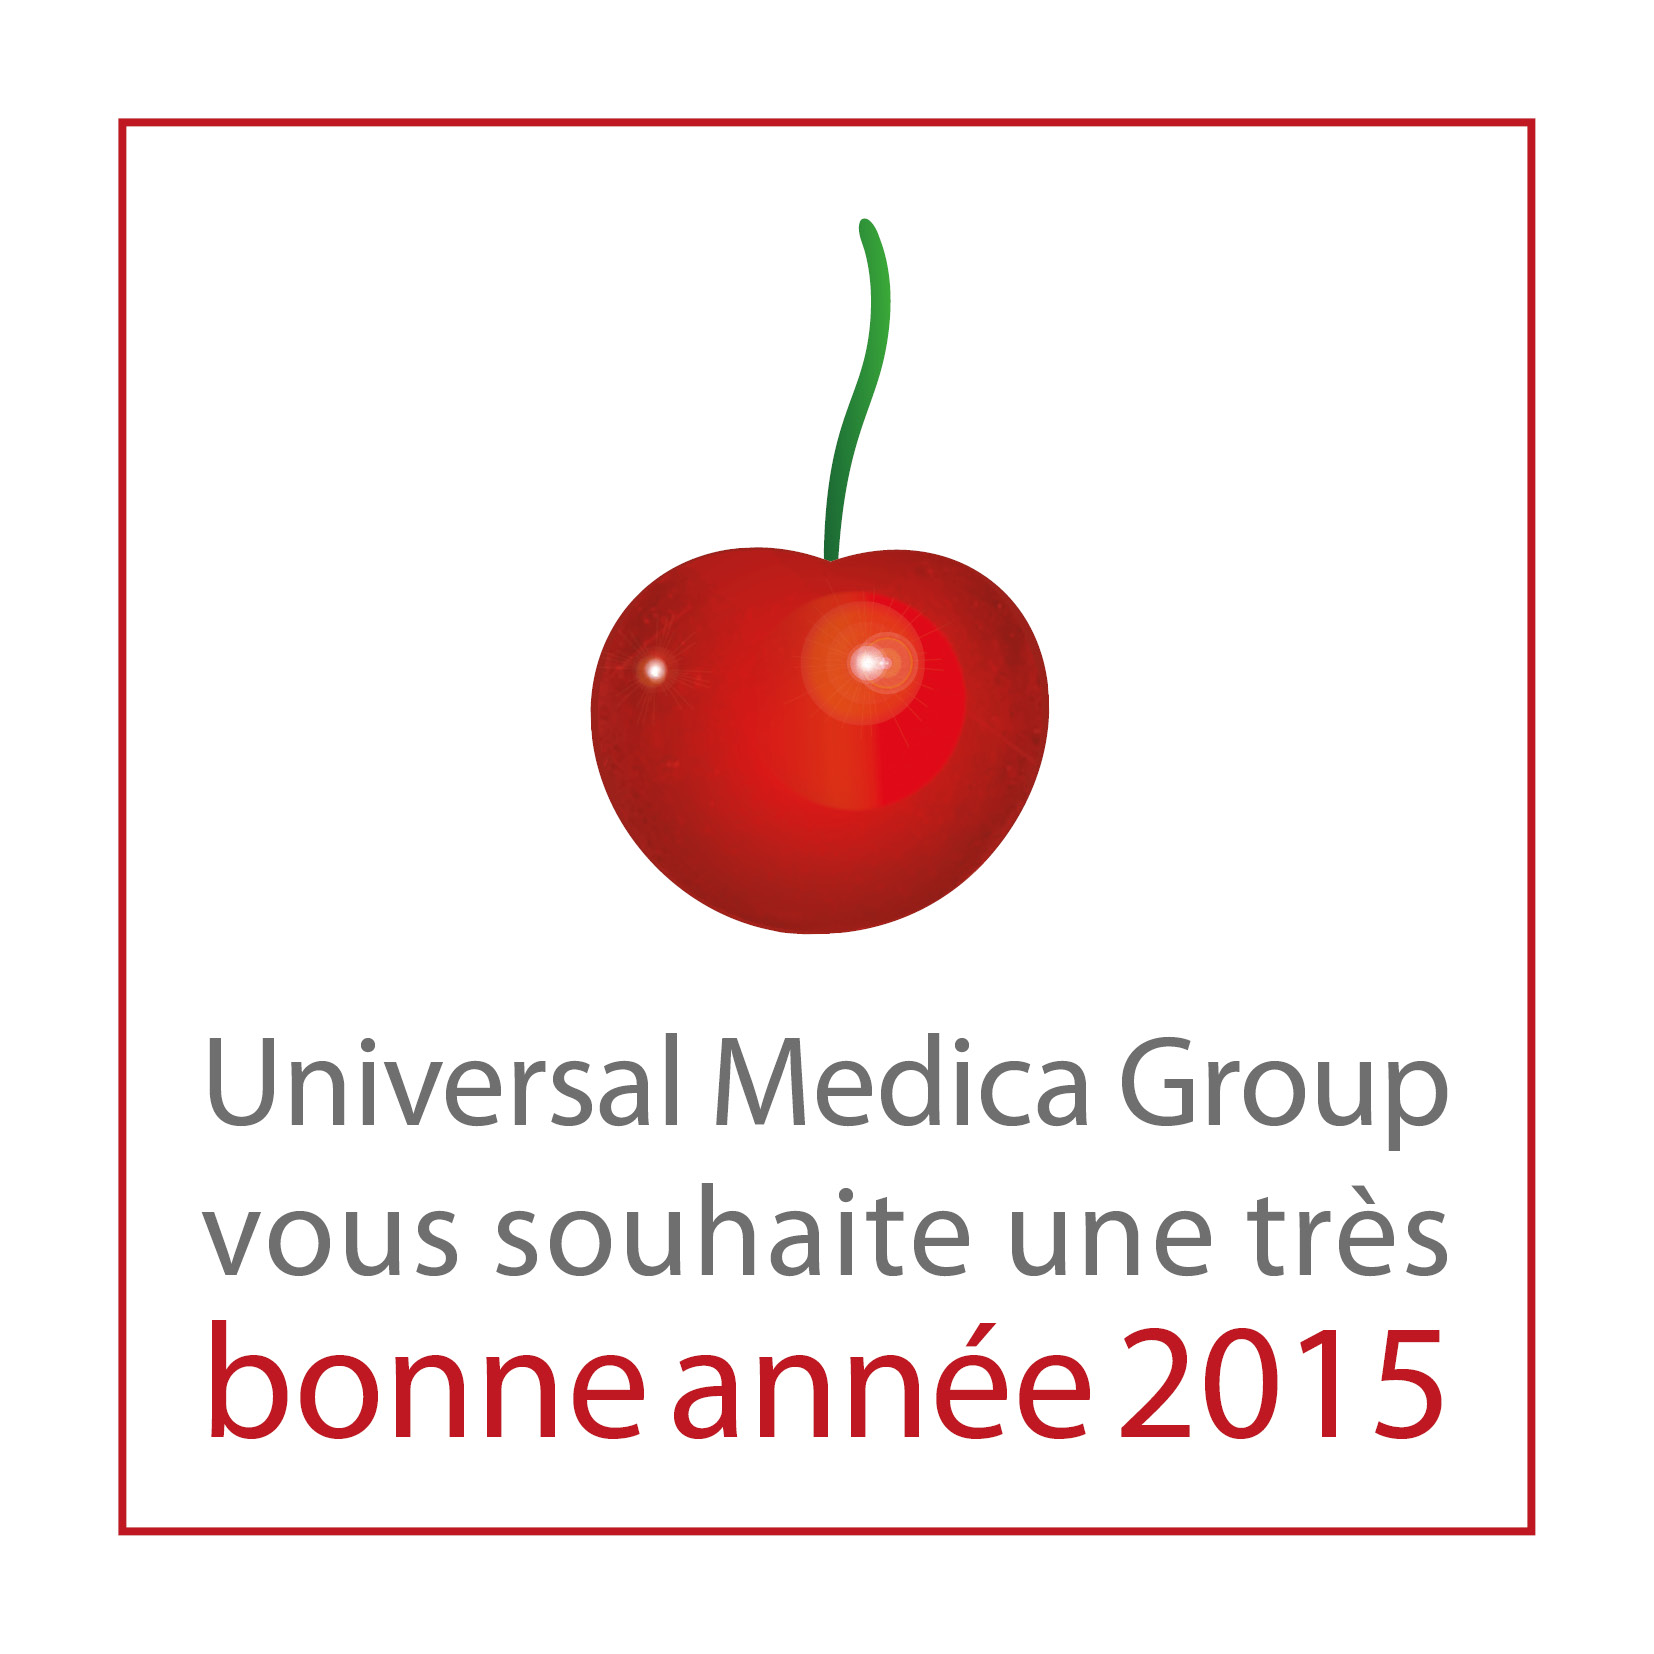 voeux 2015 universal medica group|universal medica group|cherry for lifescience